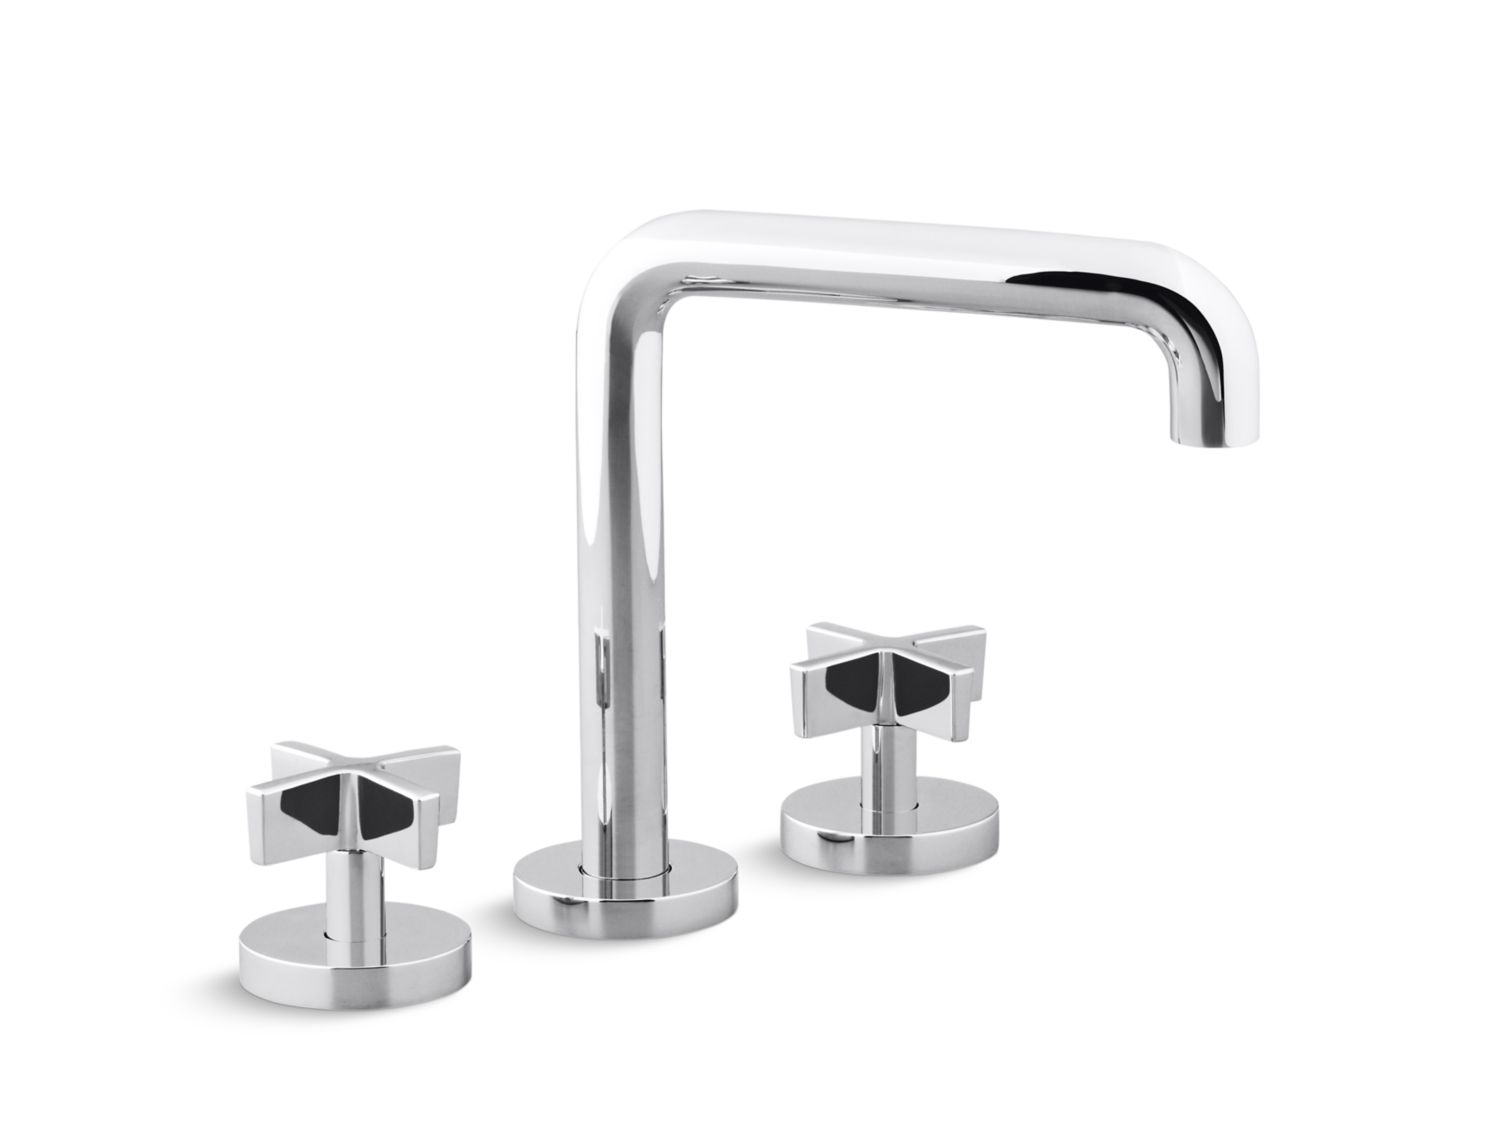 One Deck-Mount Bath Faucet, Tall-Spout, Cross Handles | P24405-CR ...